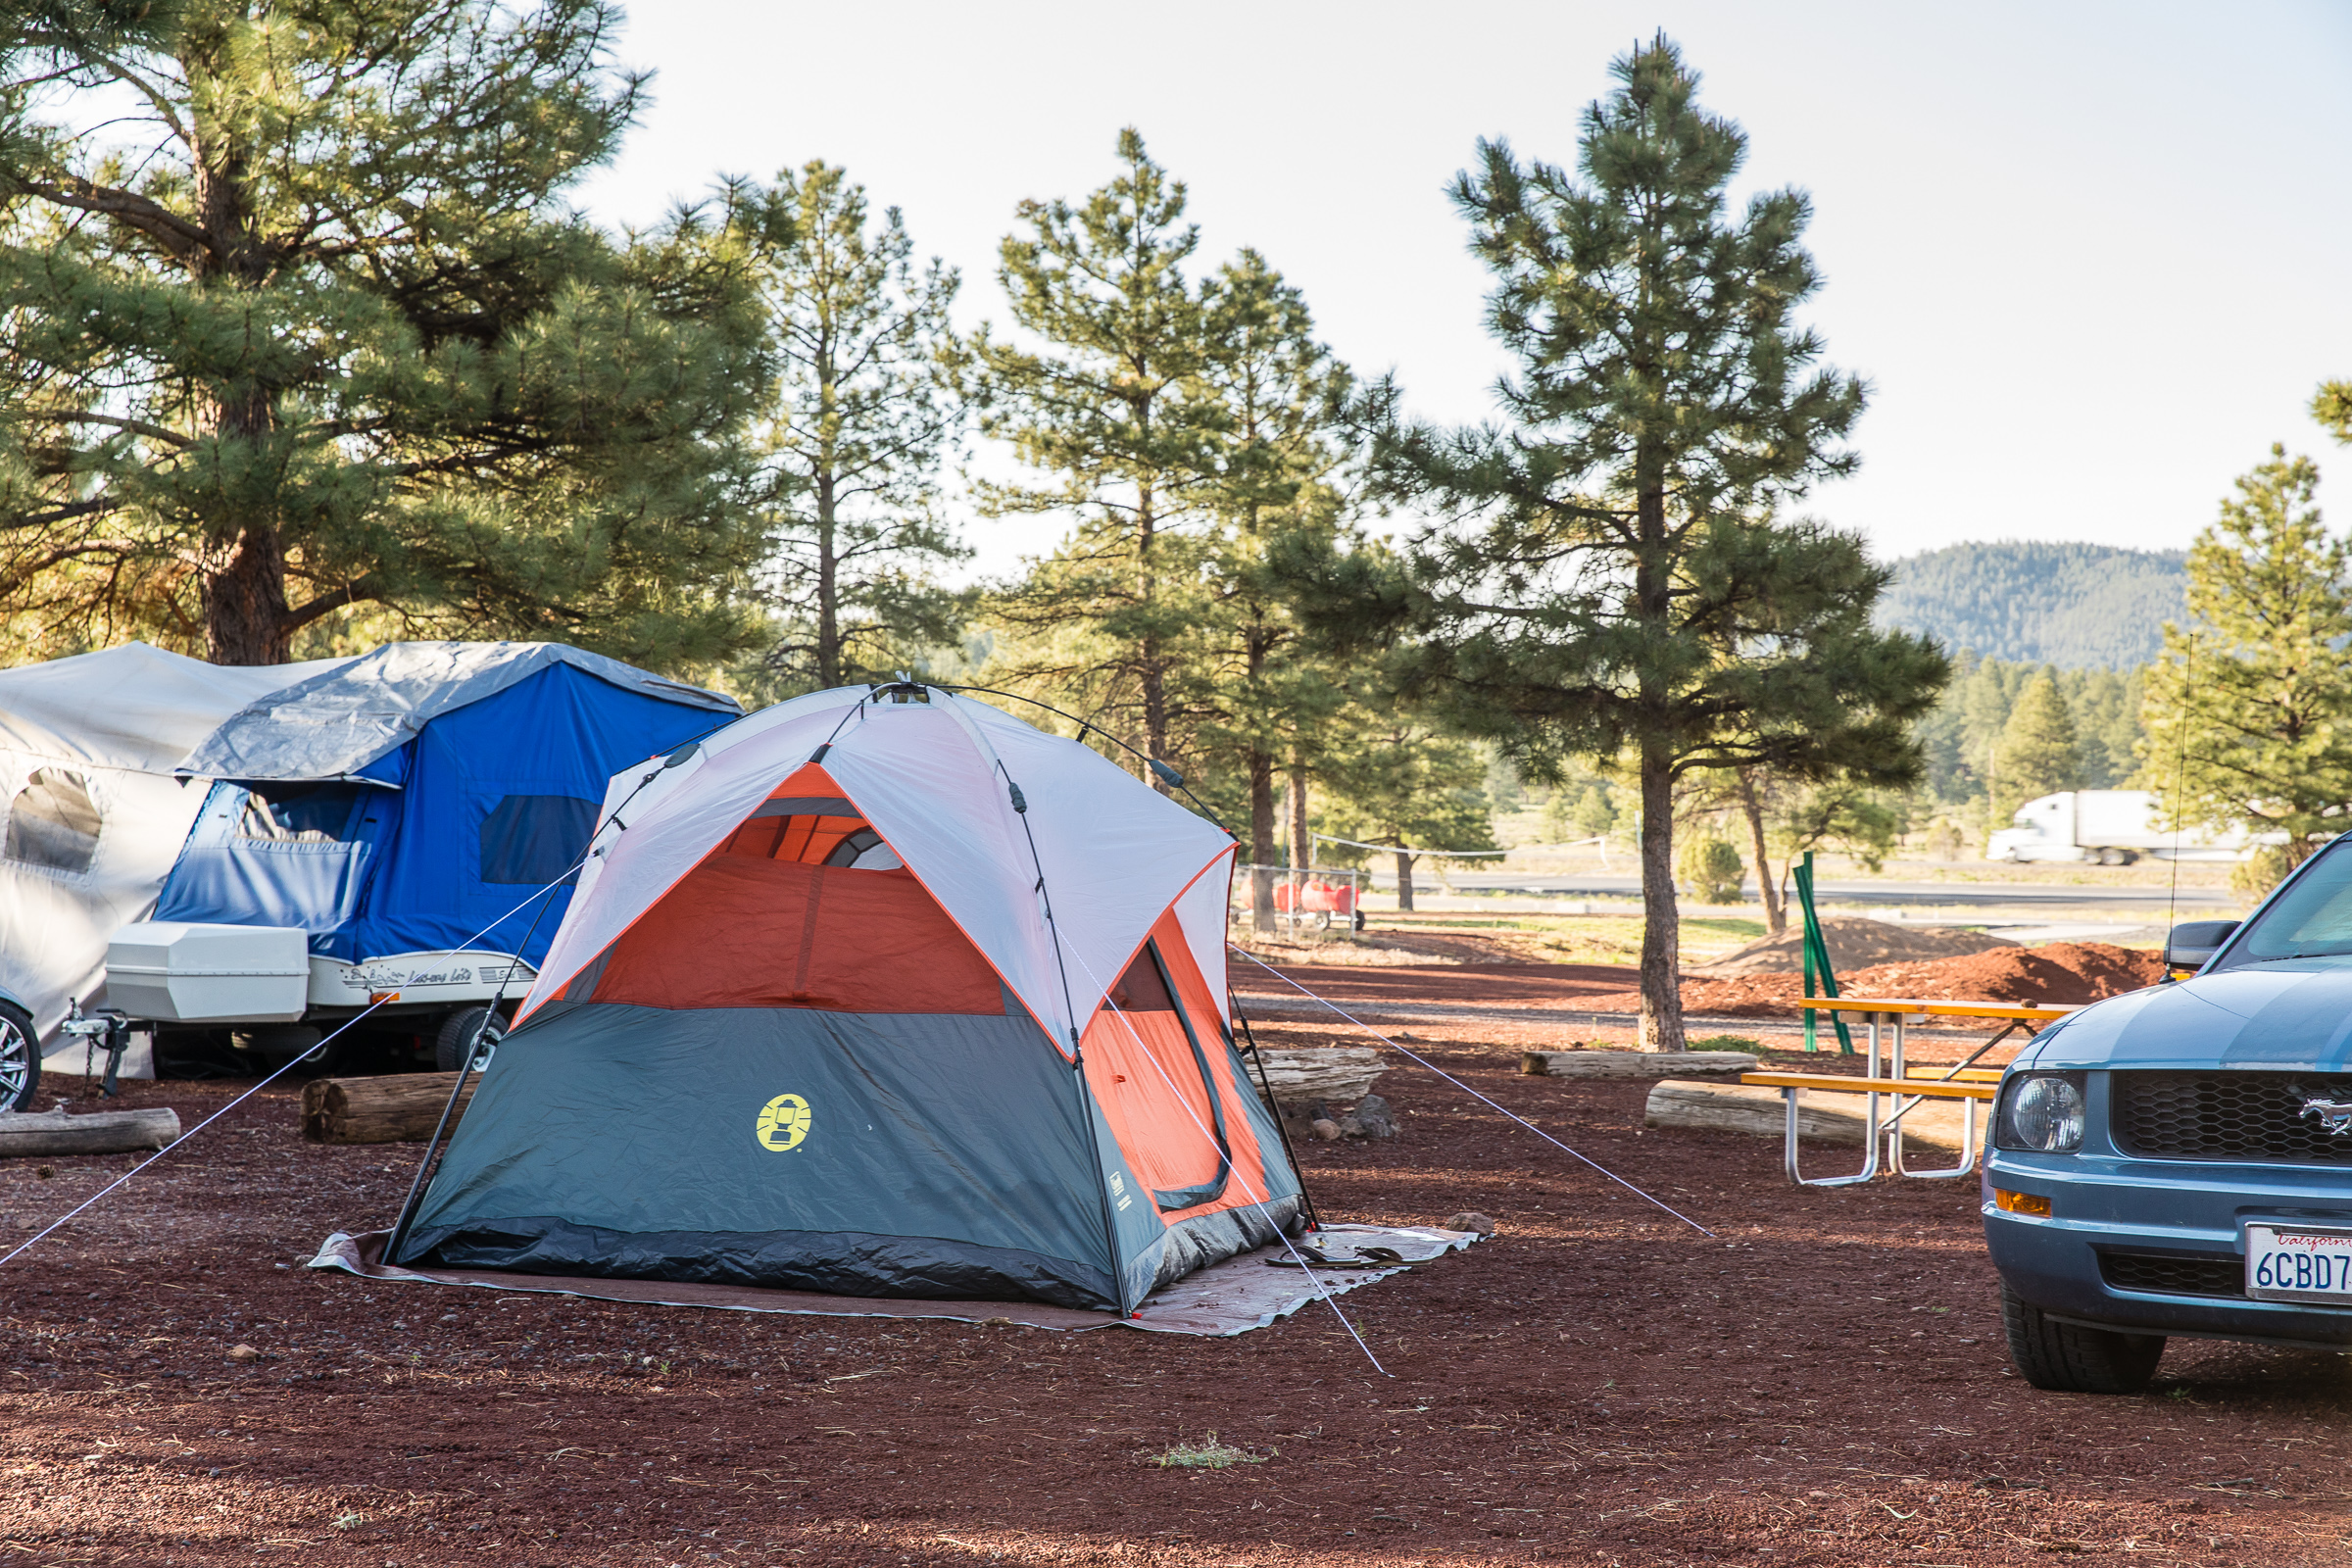 Camping in arizona with hookups